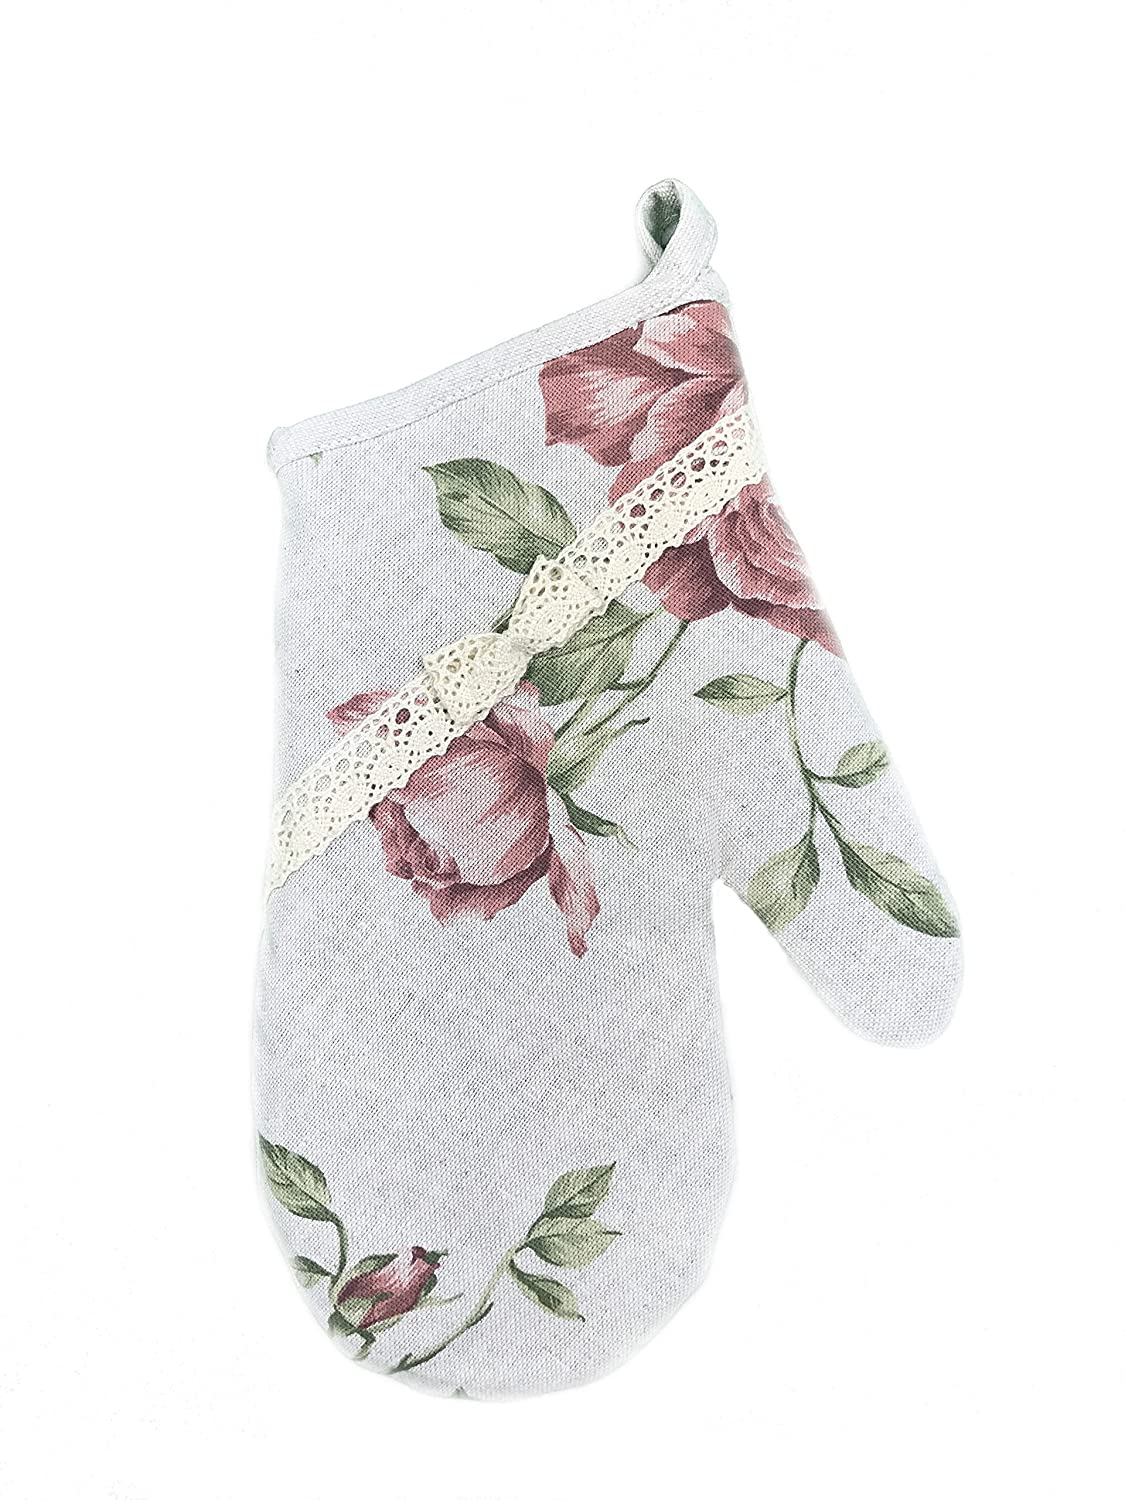 Provence Cotton Oven Mitt with Cotton Lace in French Country Style, 6'' x 13'', Pink Rose